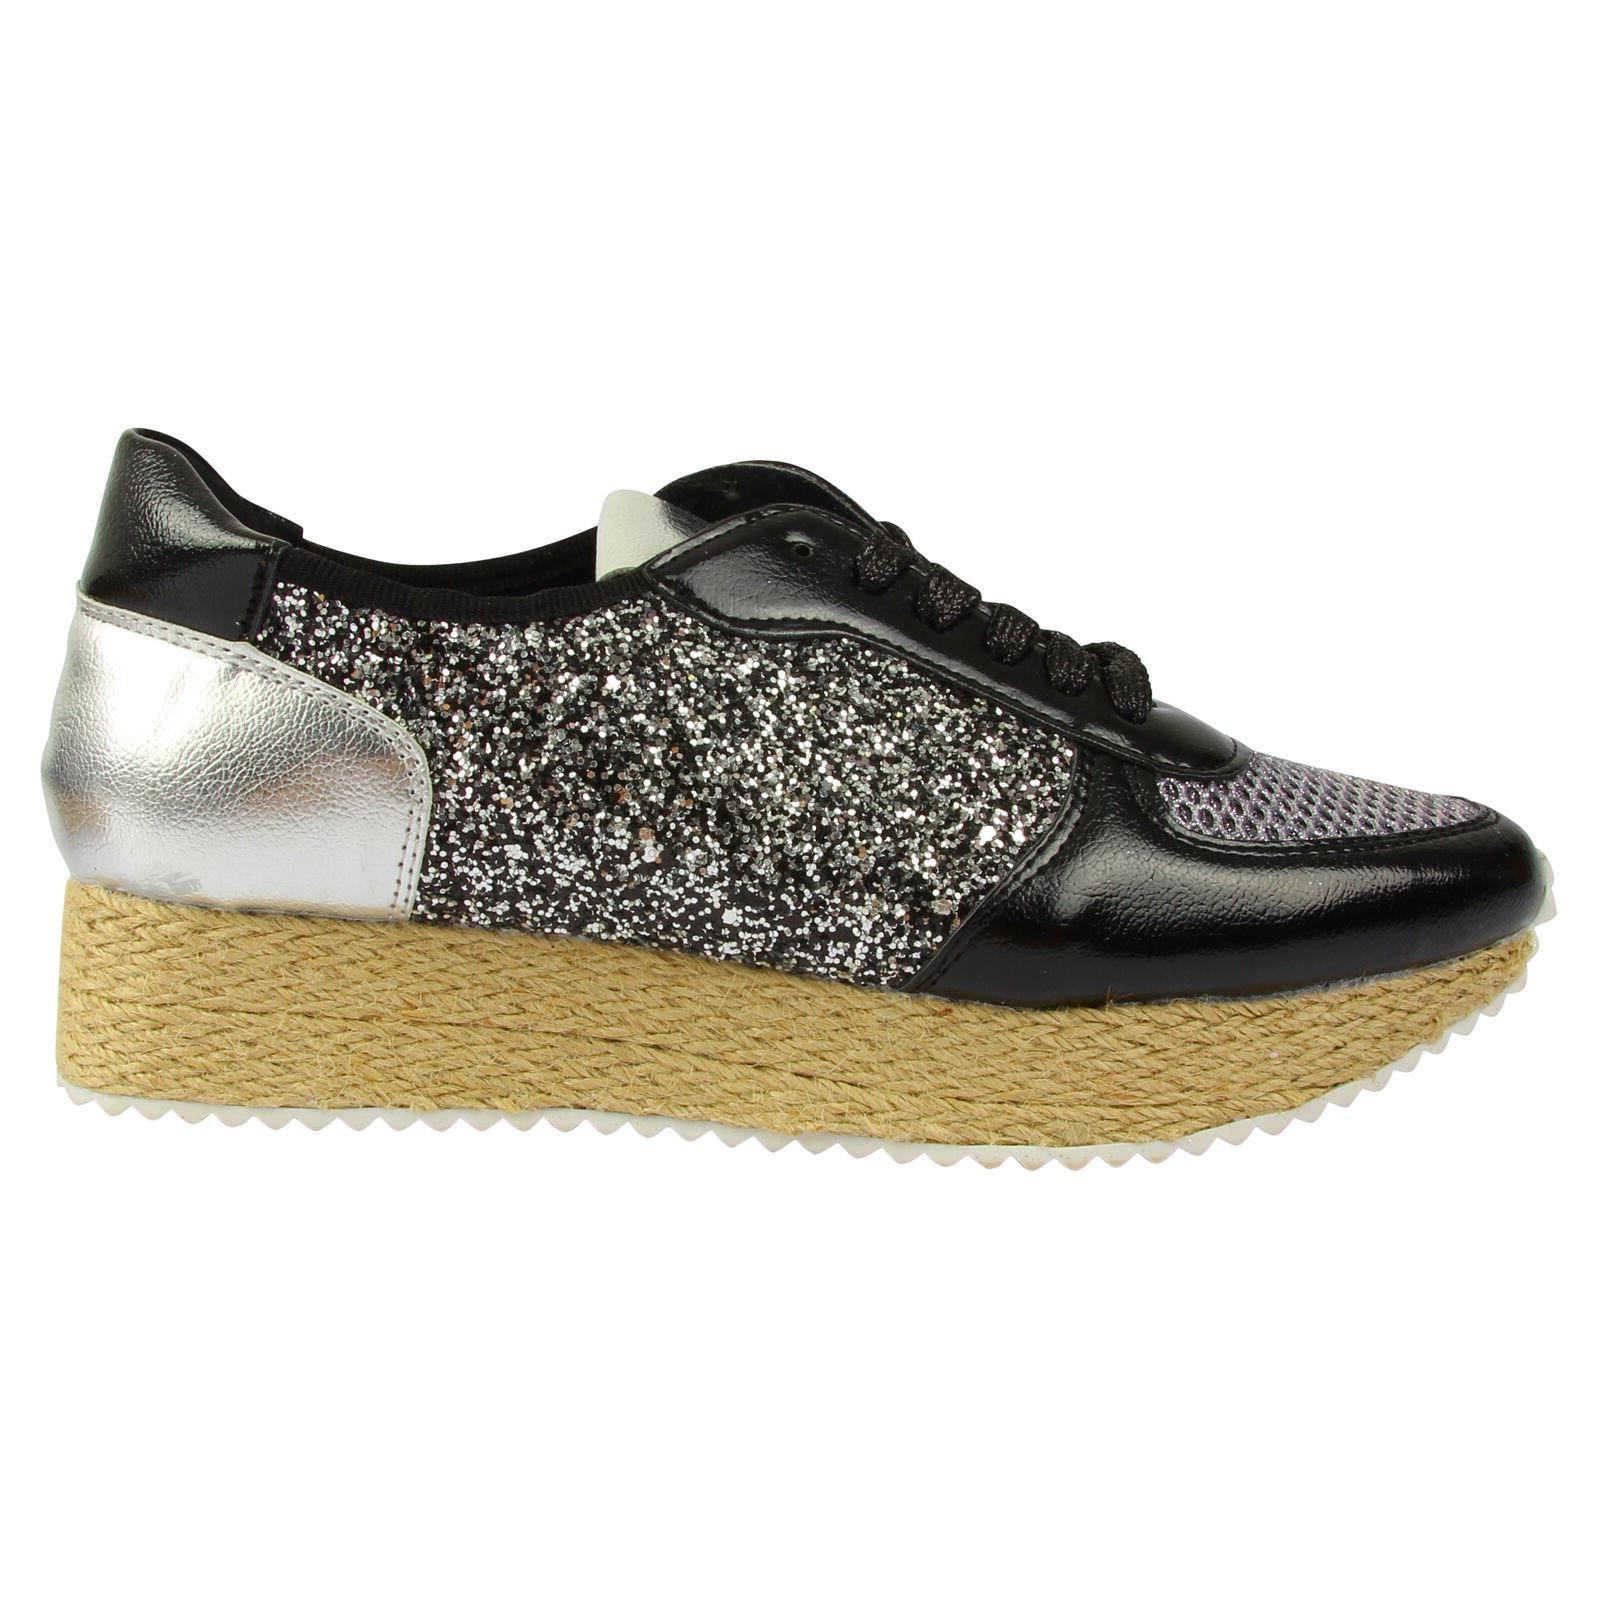 Womens Espadrill Platform Wedge Oxford Ankle Boots